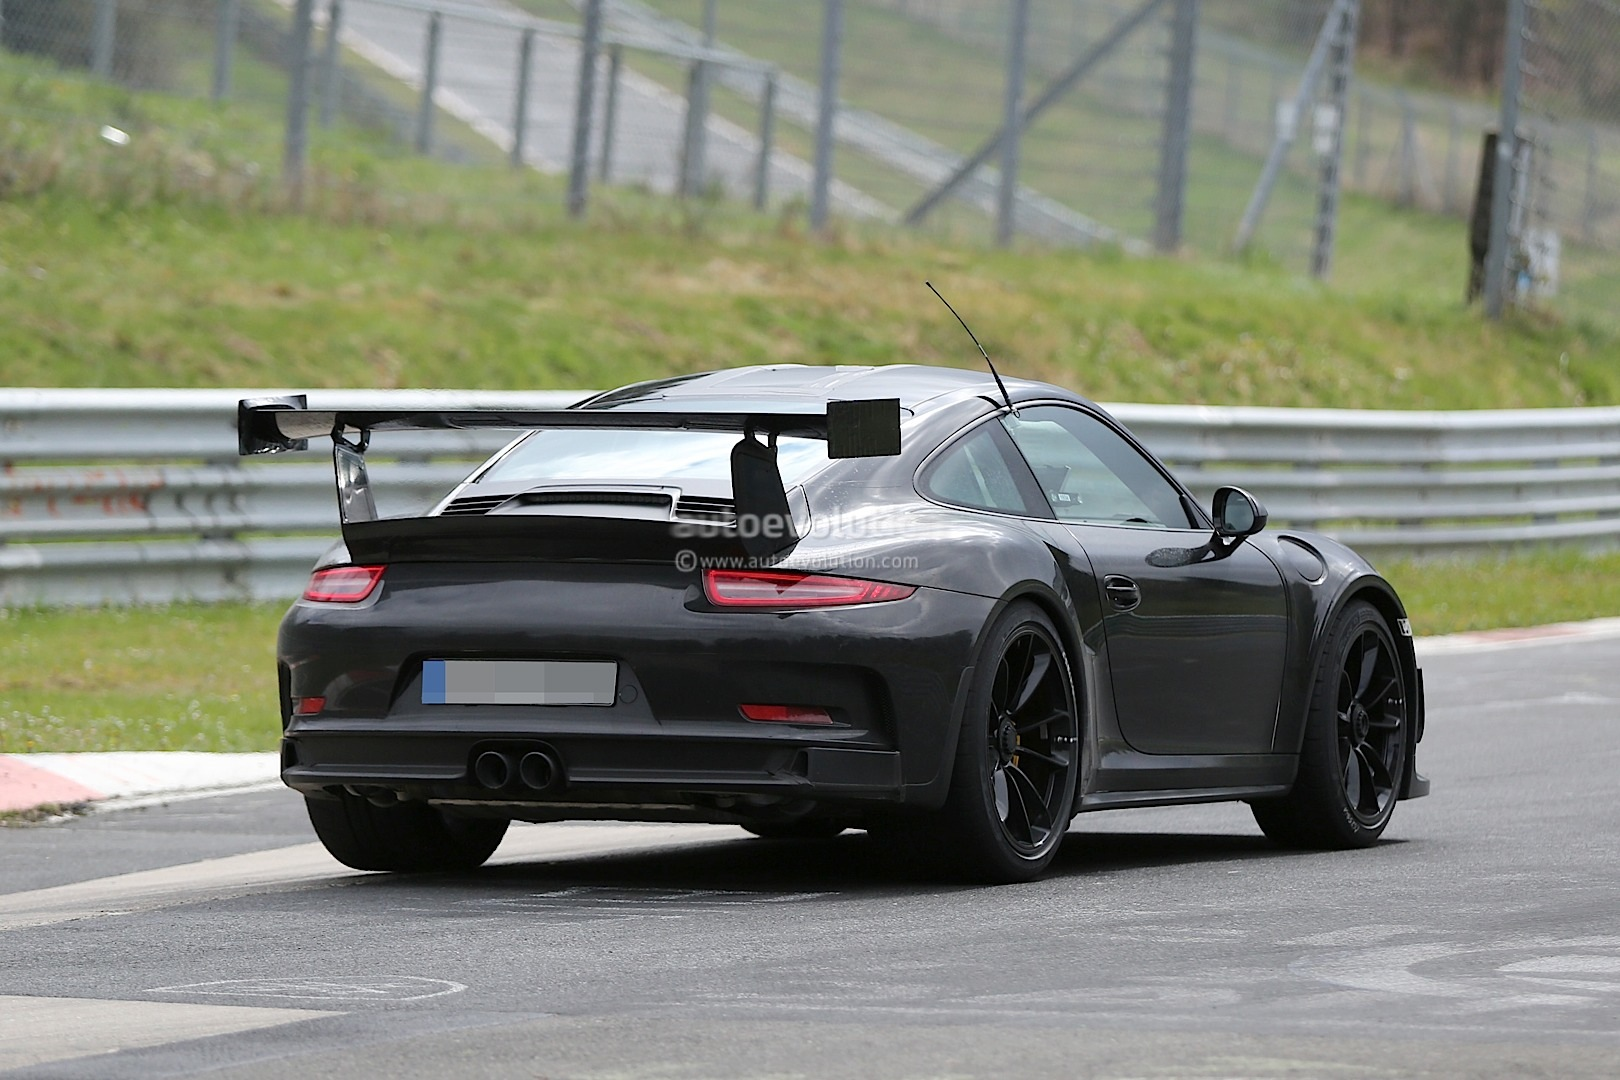 New Porsche 911 GT2 Spied Lapping the Nurburgring ...